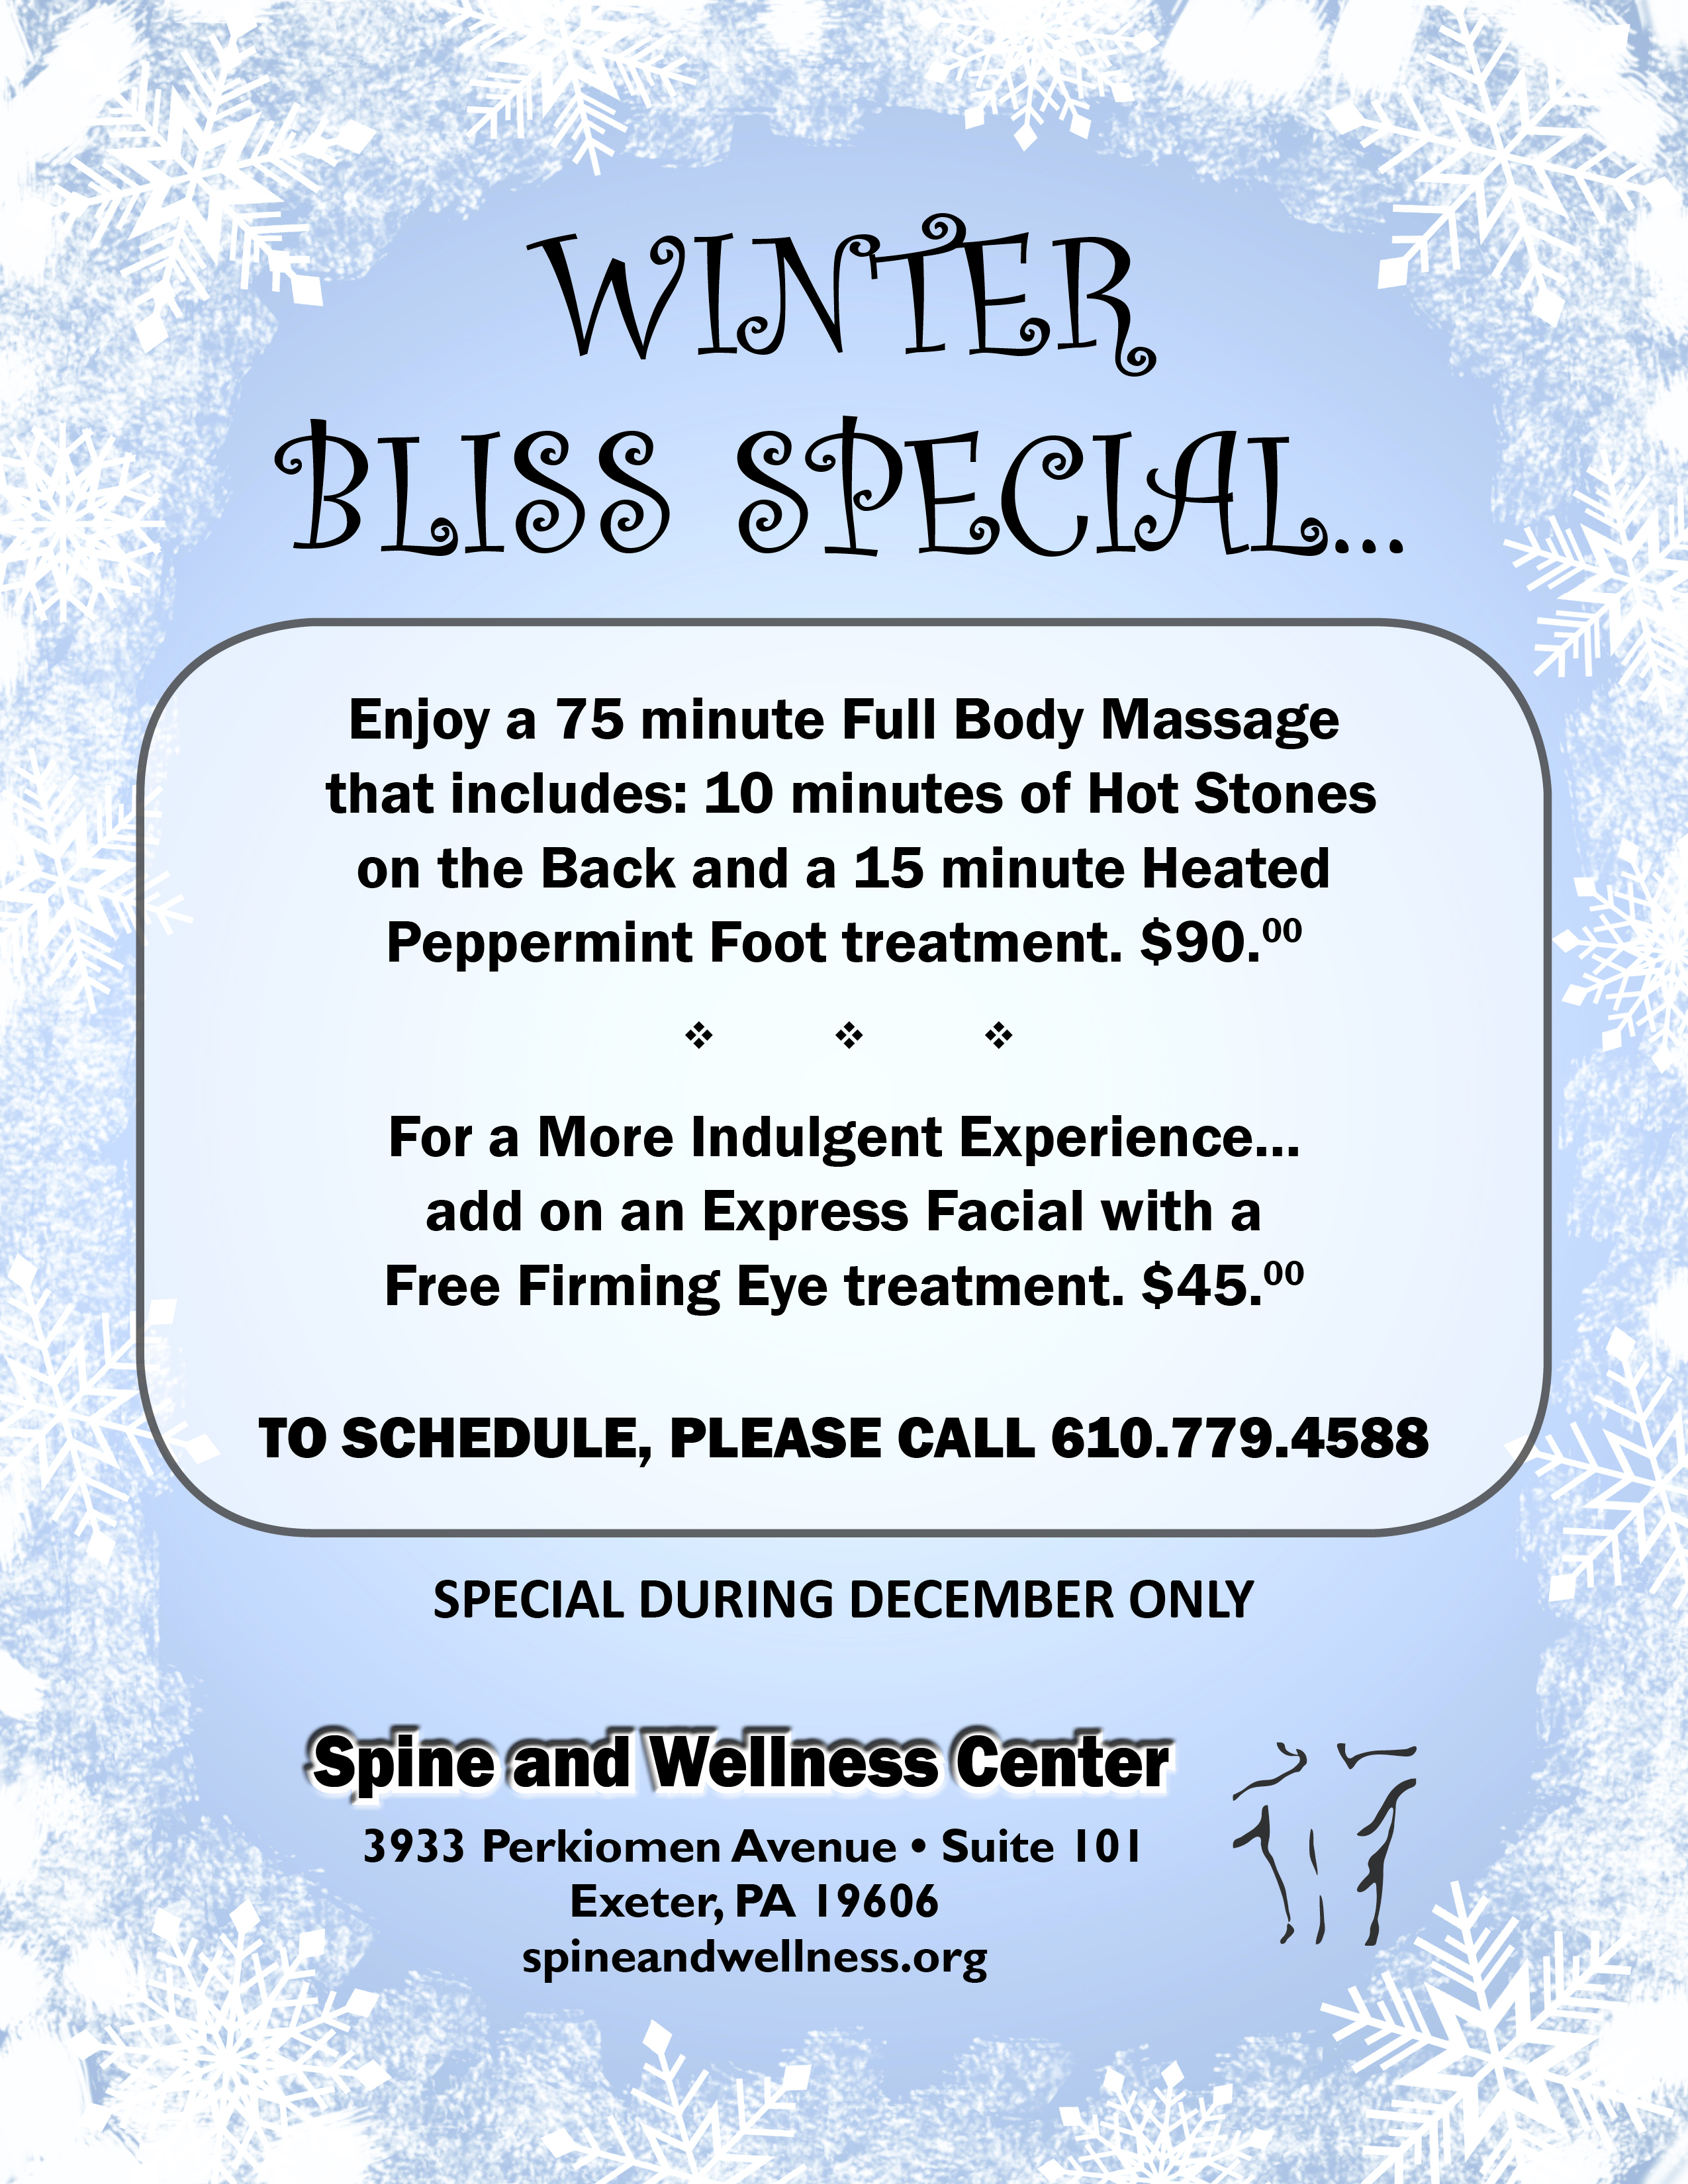 Winter Bliss Massage Special